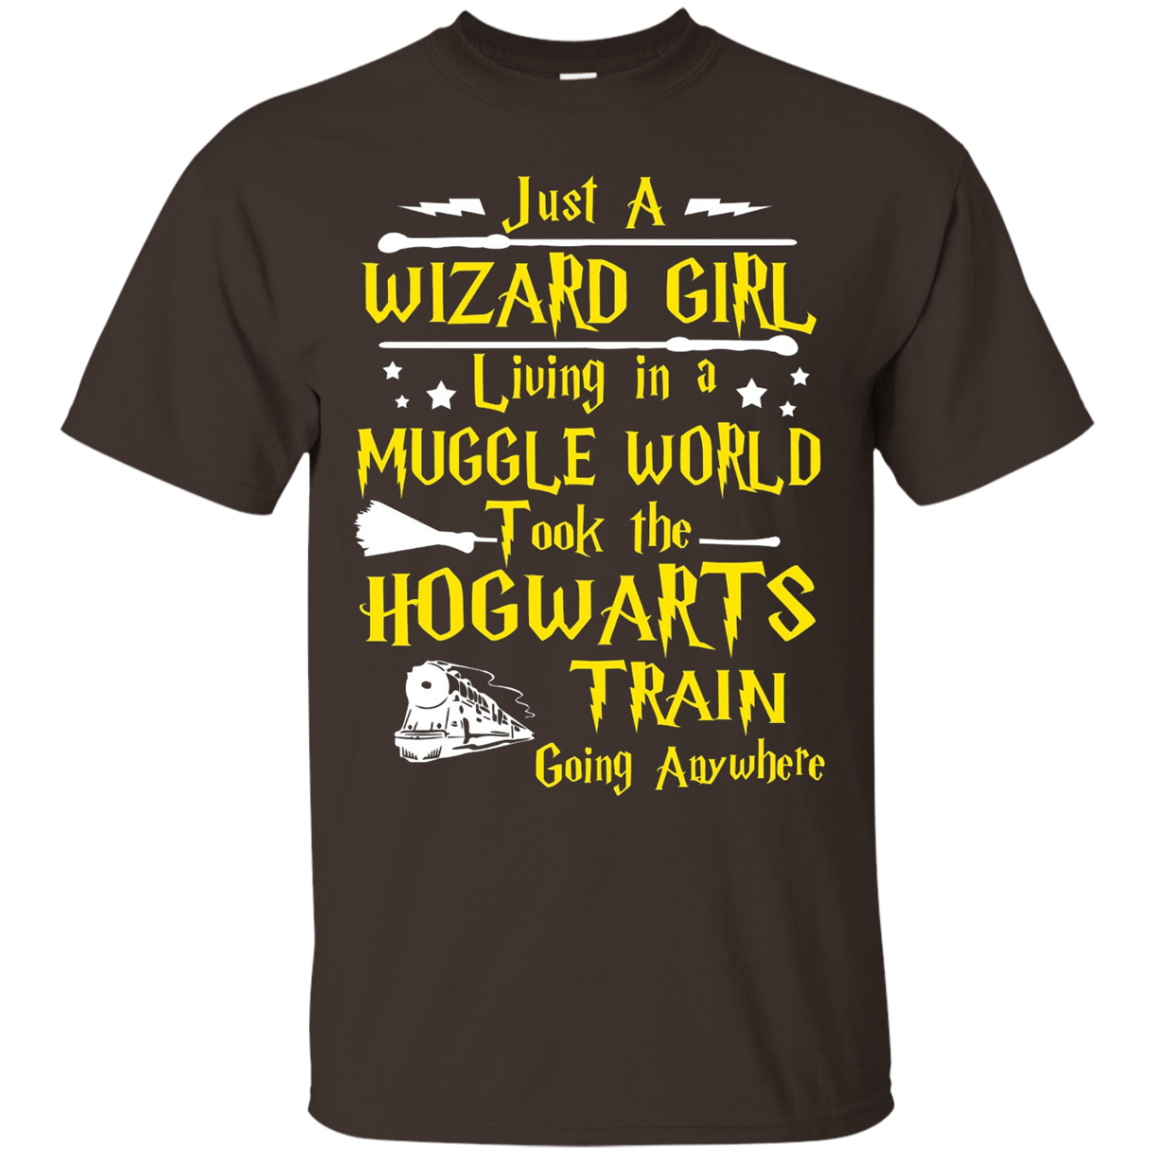 Just a Wizard Girl T-Shirt